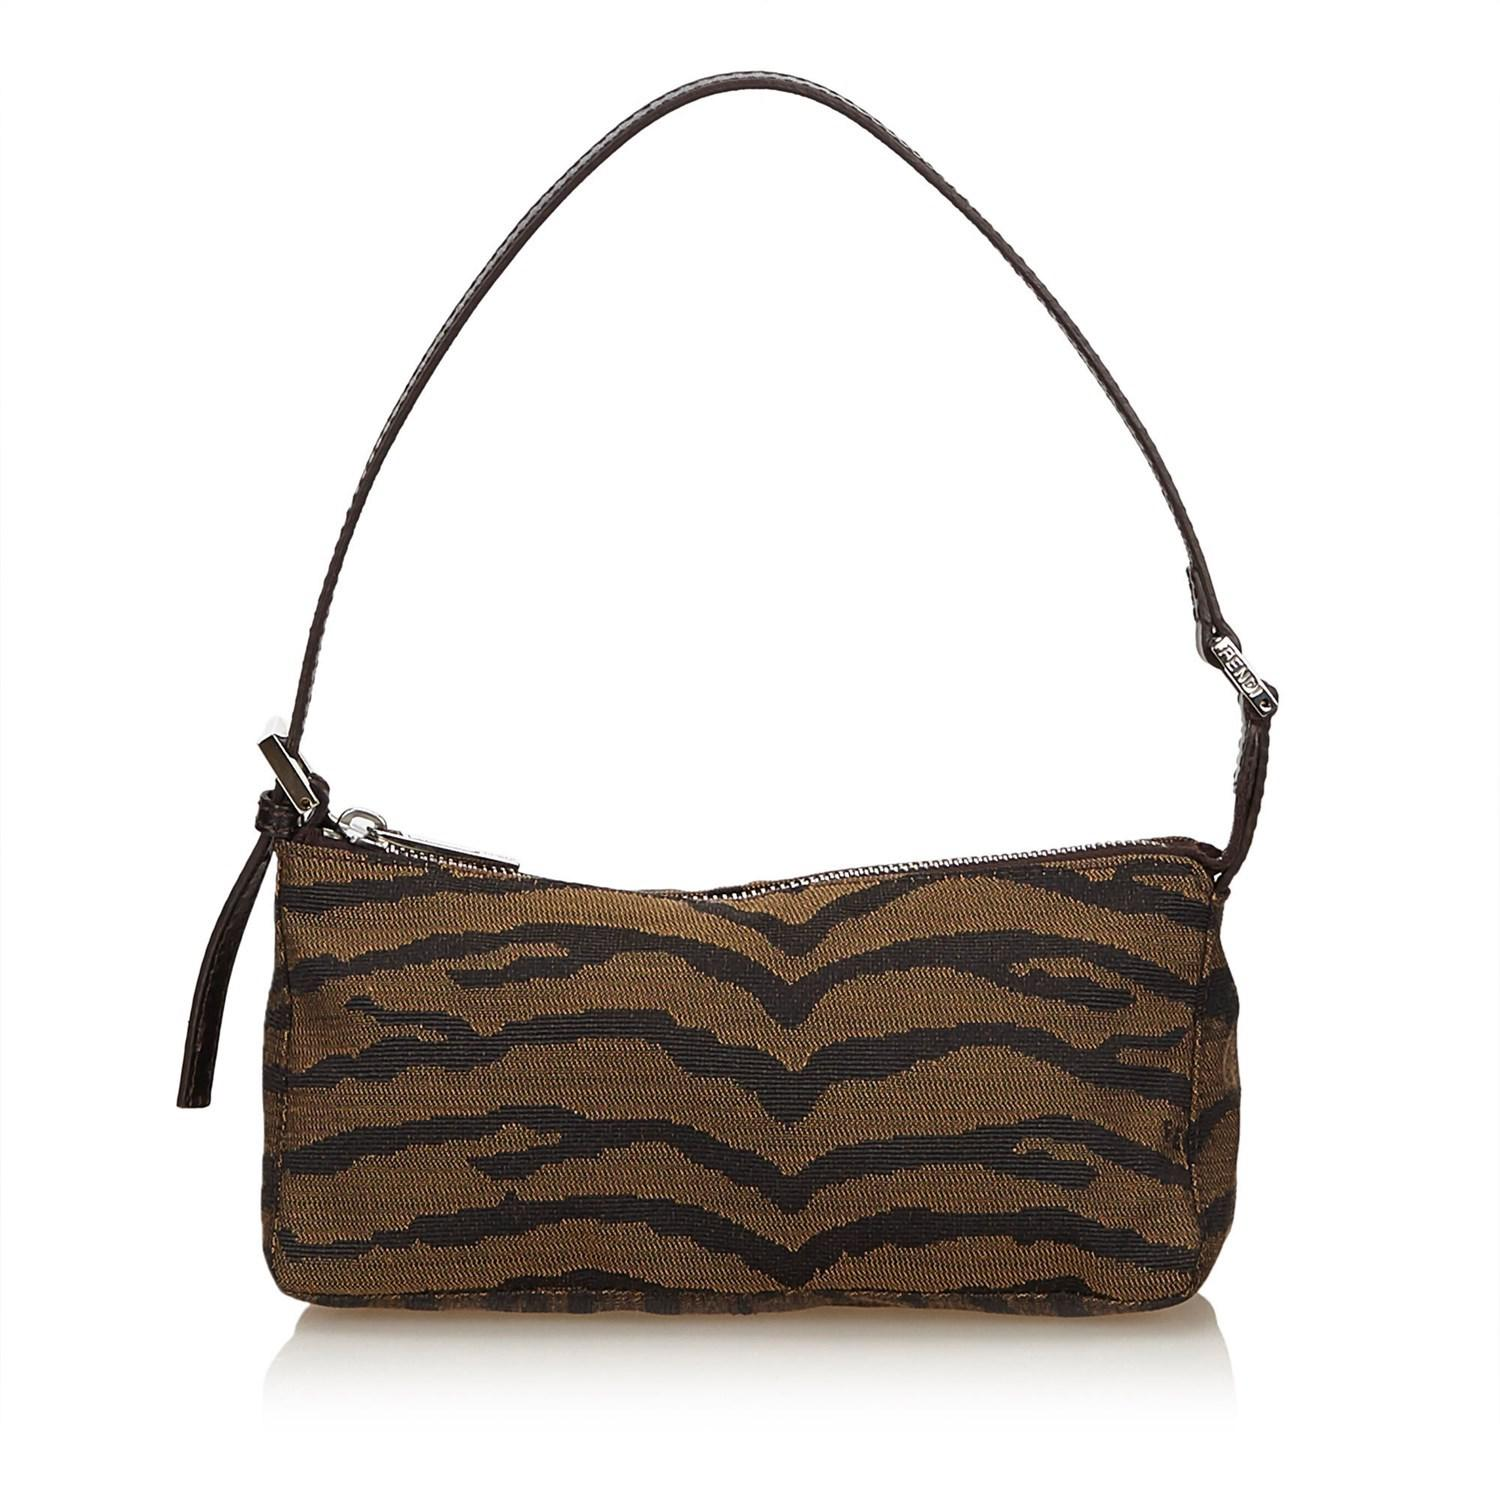 7dd55fb85185 Lyst - Fendi Printed Jacquard Handbag in Brown